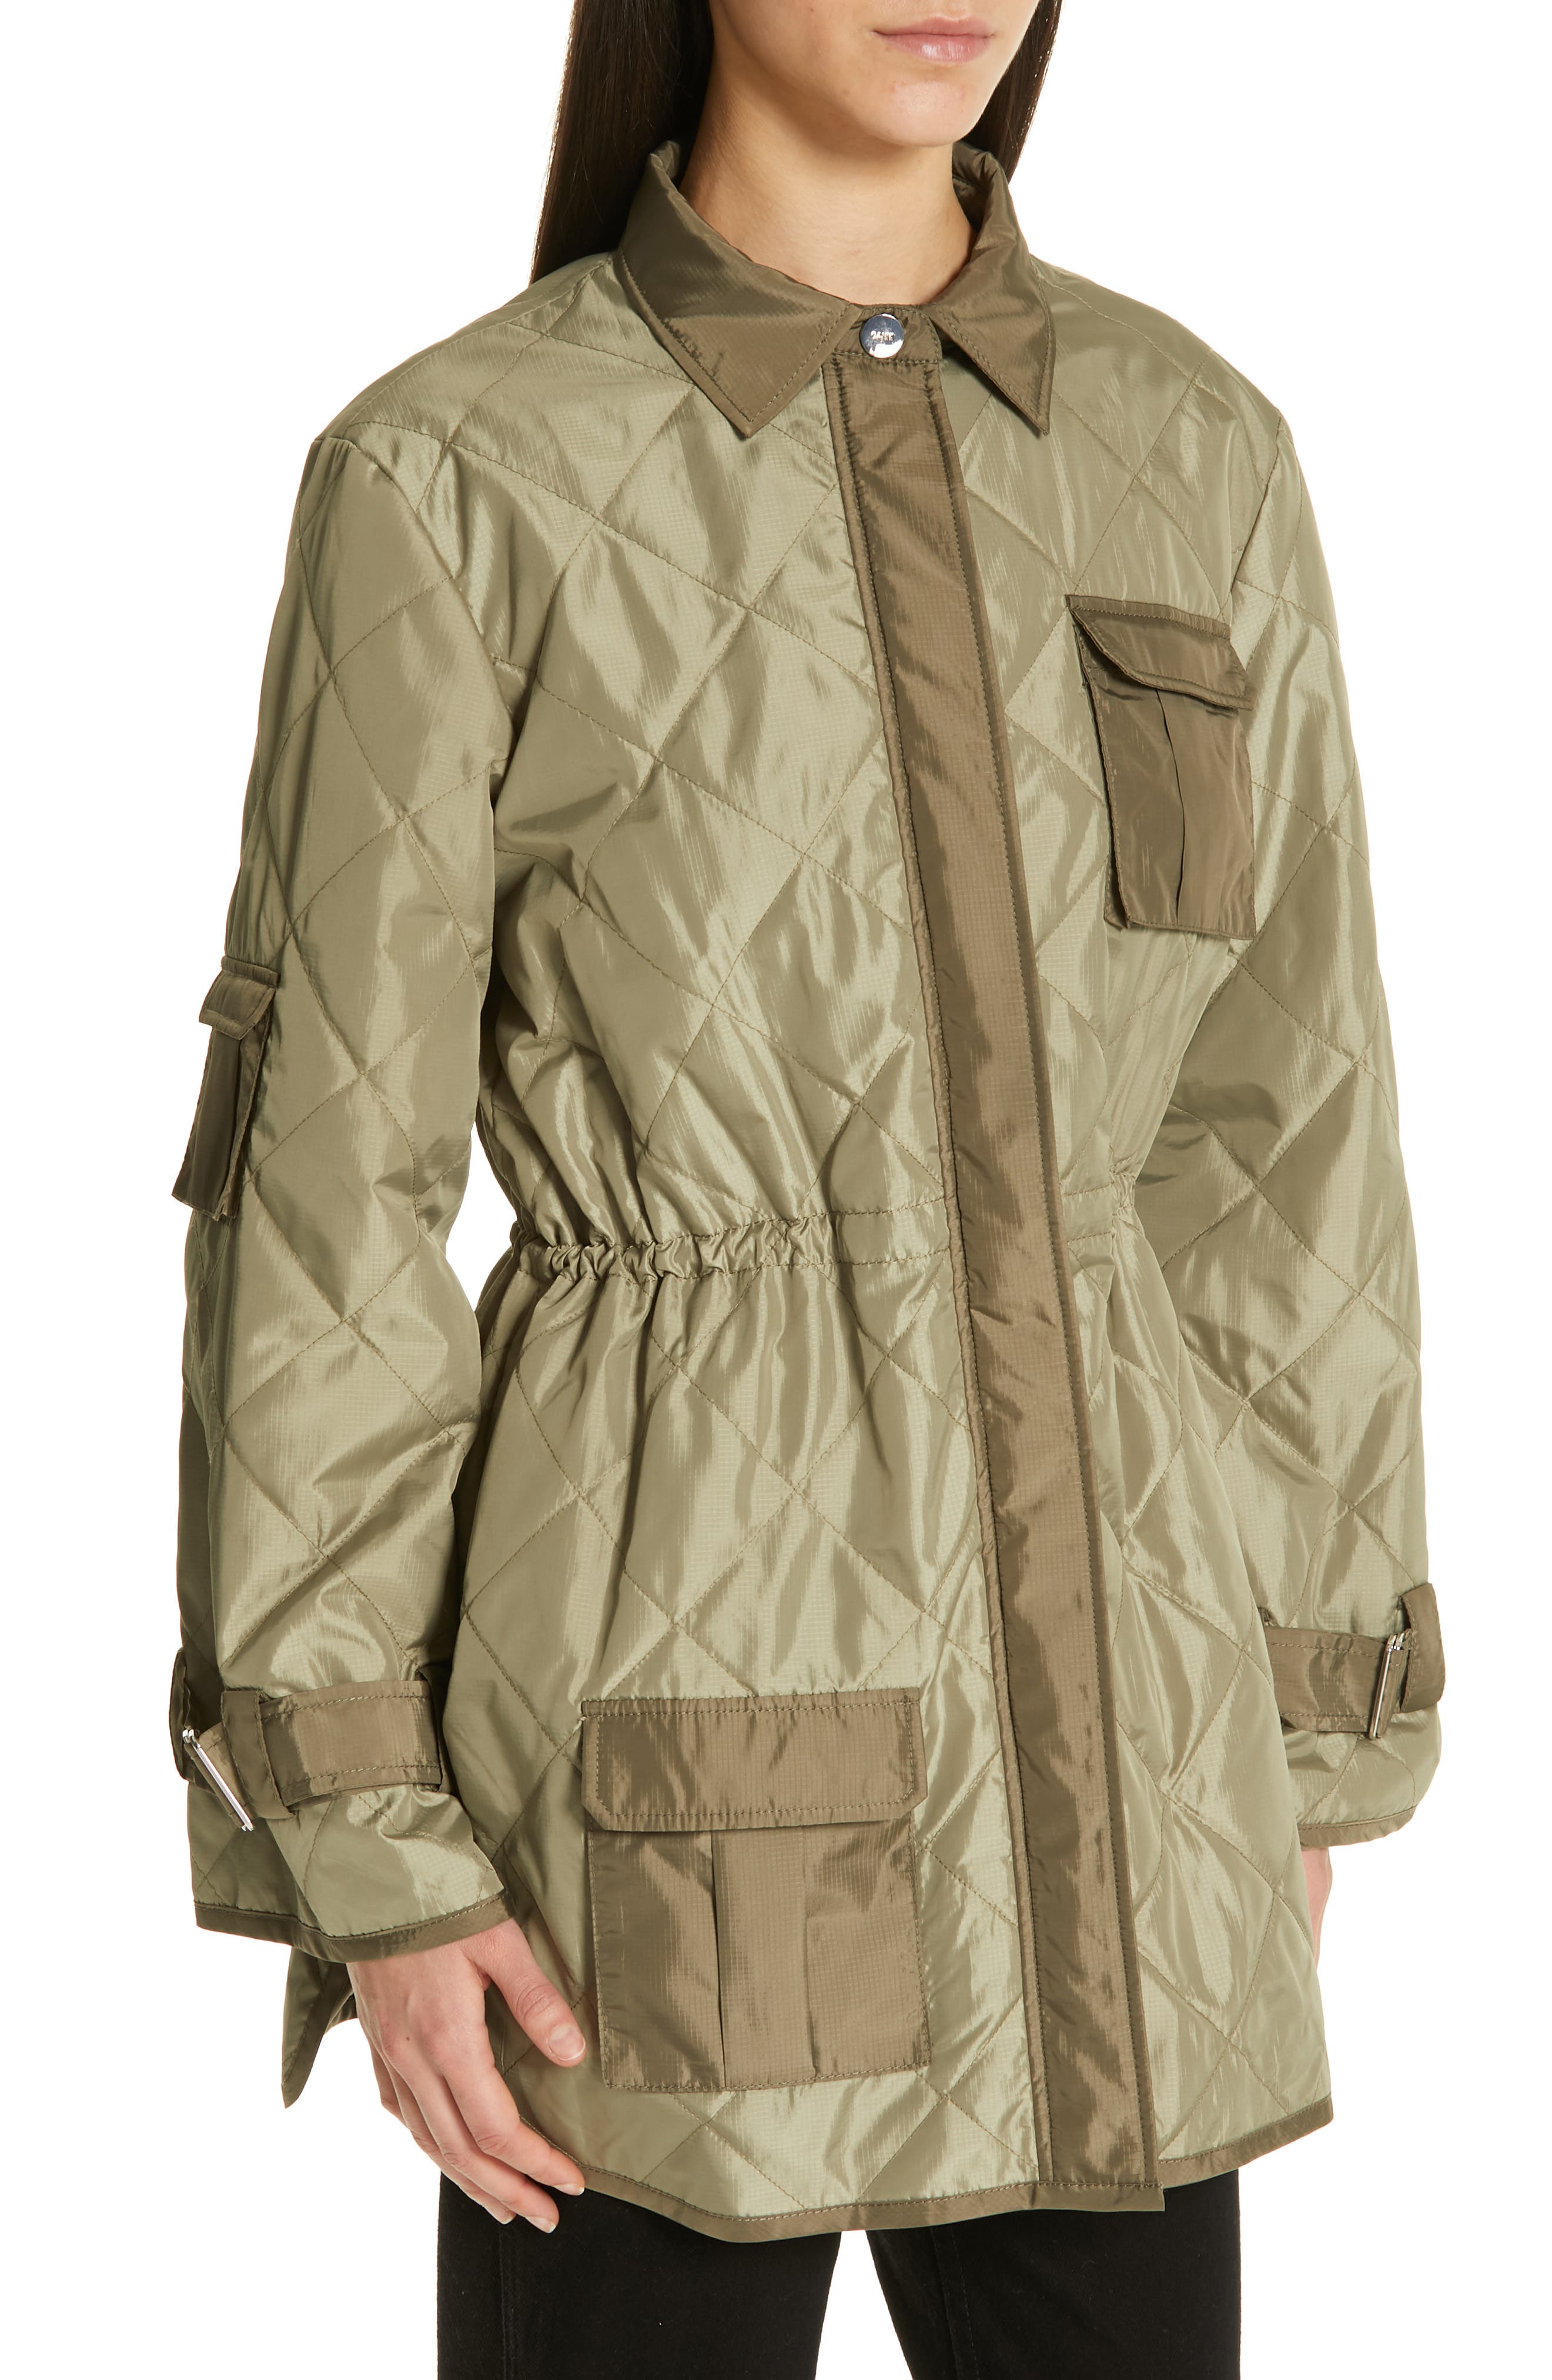 GANNI, Quilted Ripstop Jacket, Alternate thumbnail 4, color, ALOE